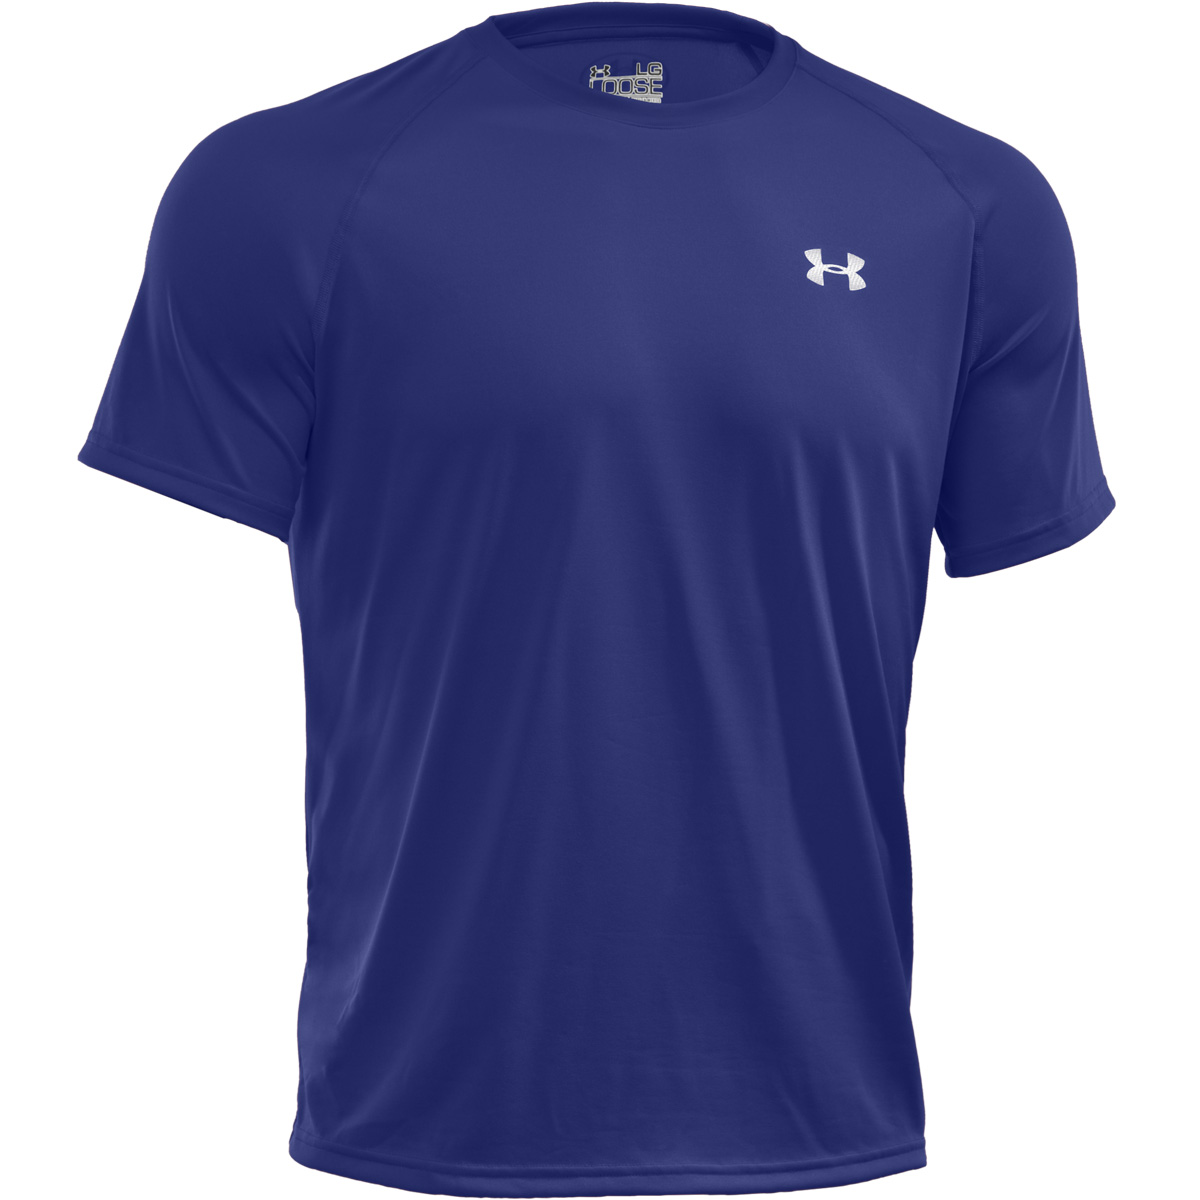 Under Armour Mens UA Tech SS T Shirt HeatGear Short Sleeve Training 31% OFF  RRP; Picture 2 of 5; Picture 3 of 5 ...